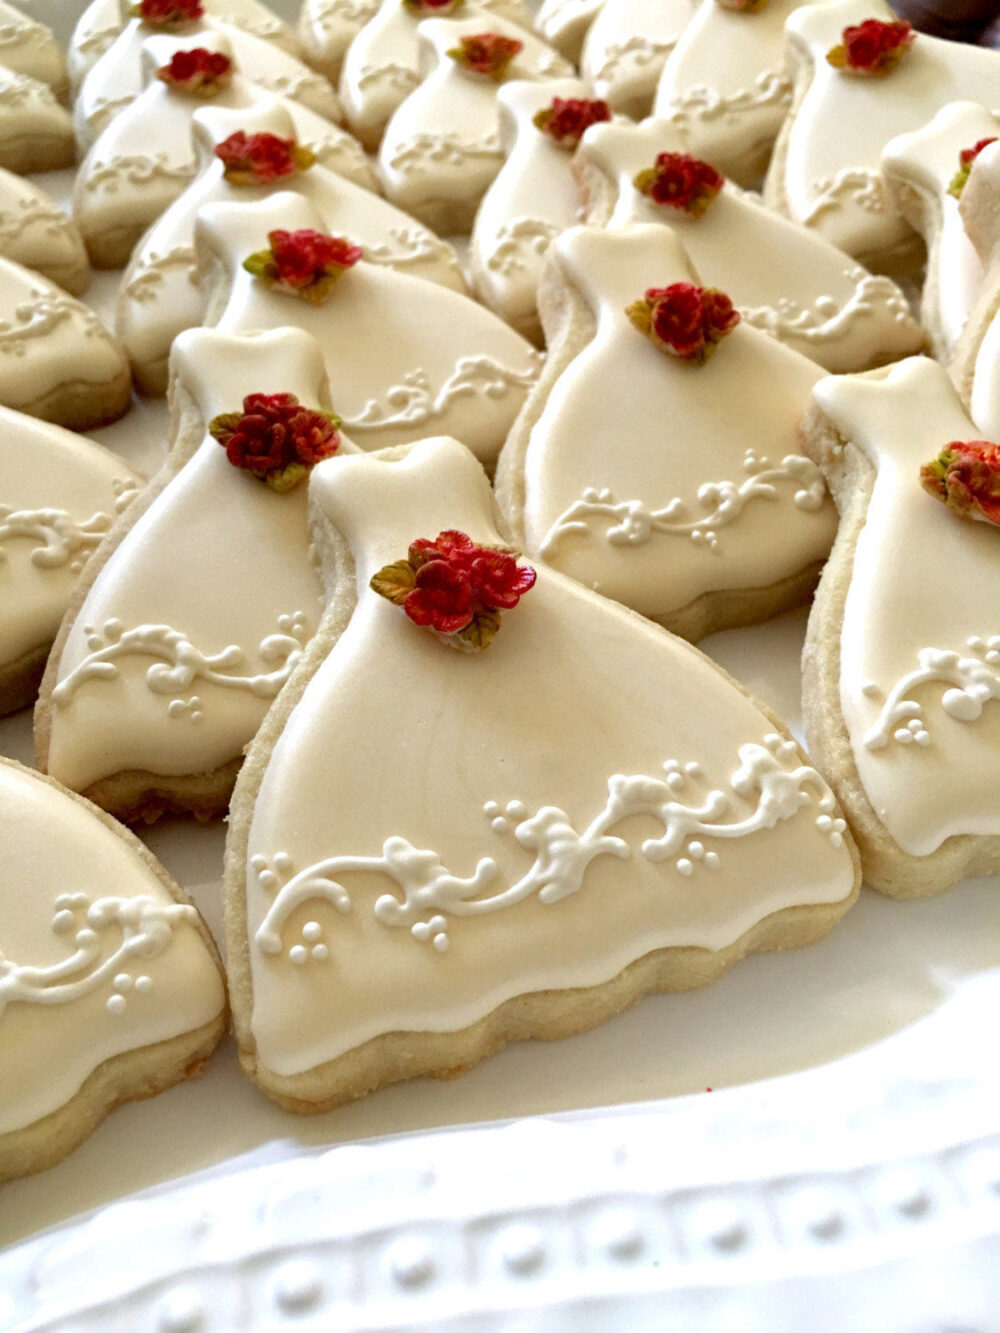 18 Pieces Petite Sized Wedding Dress Cookies - Cookie Favors, Cookies, Bridal Shower Wedding Gown Cookies